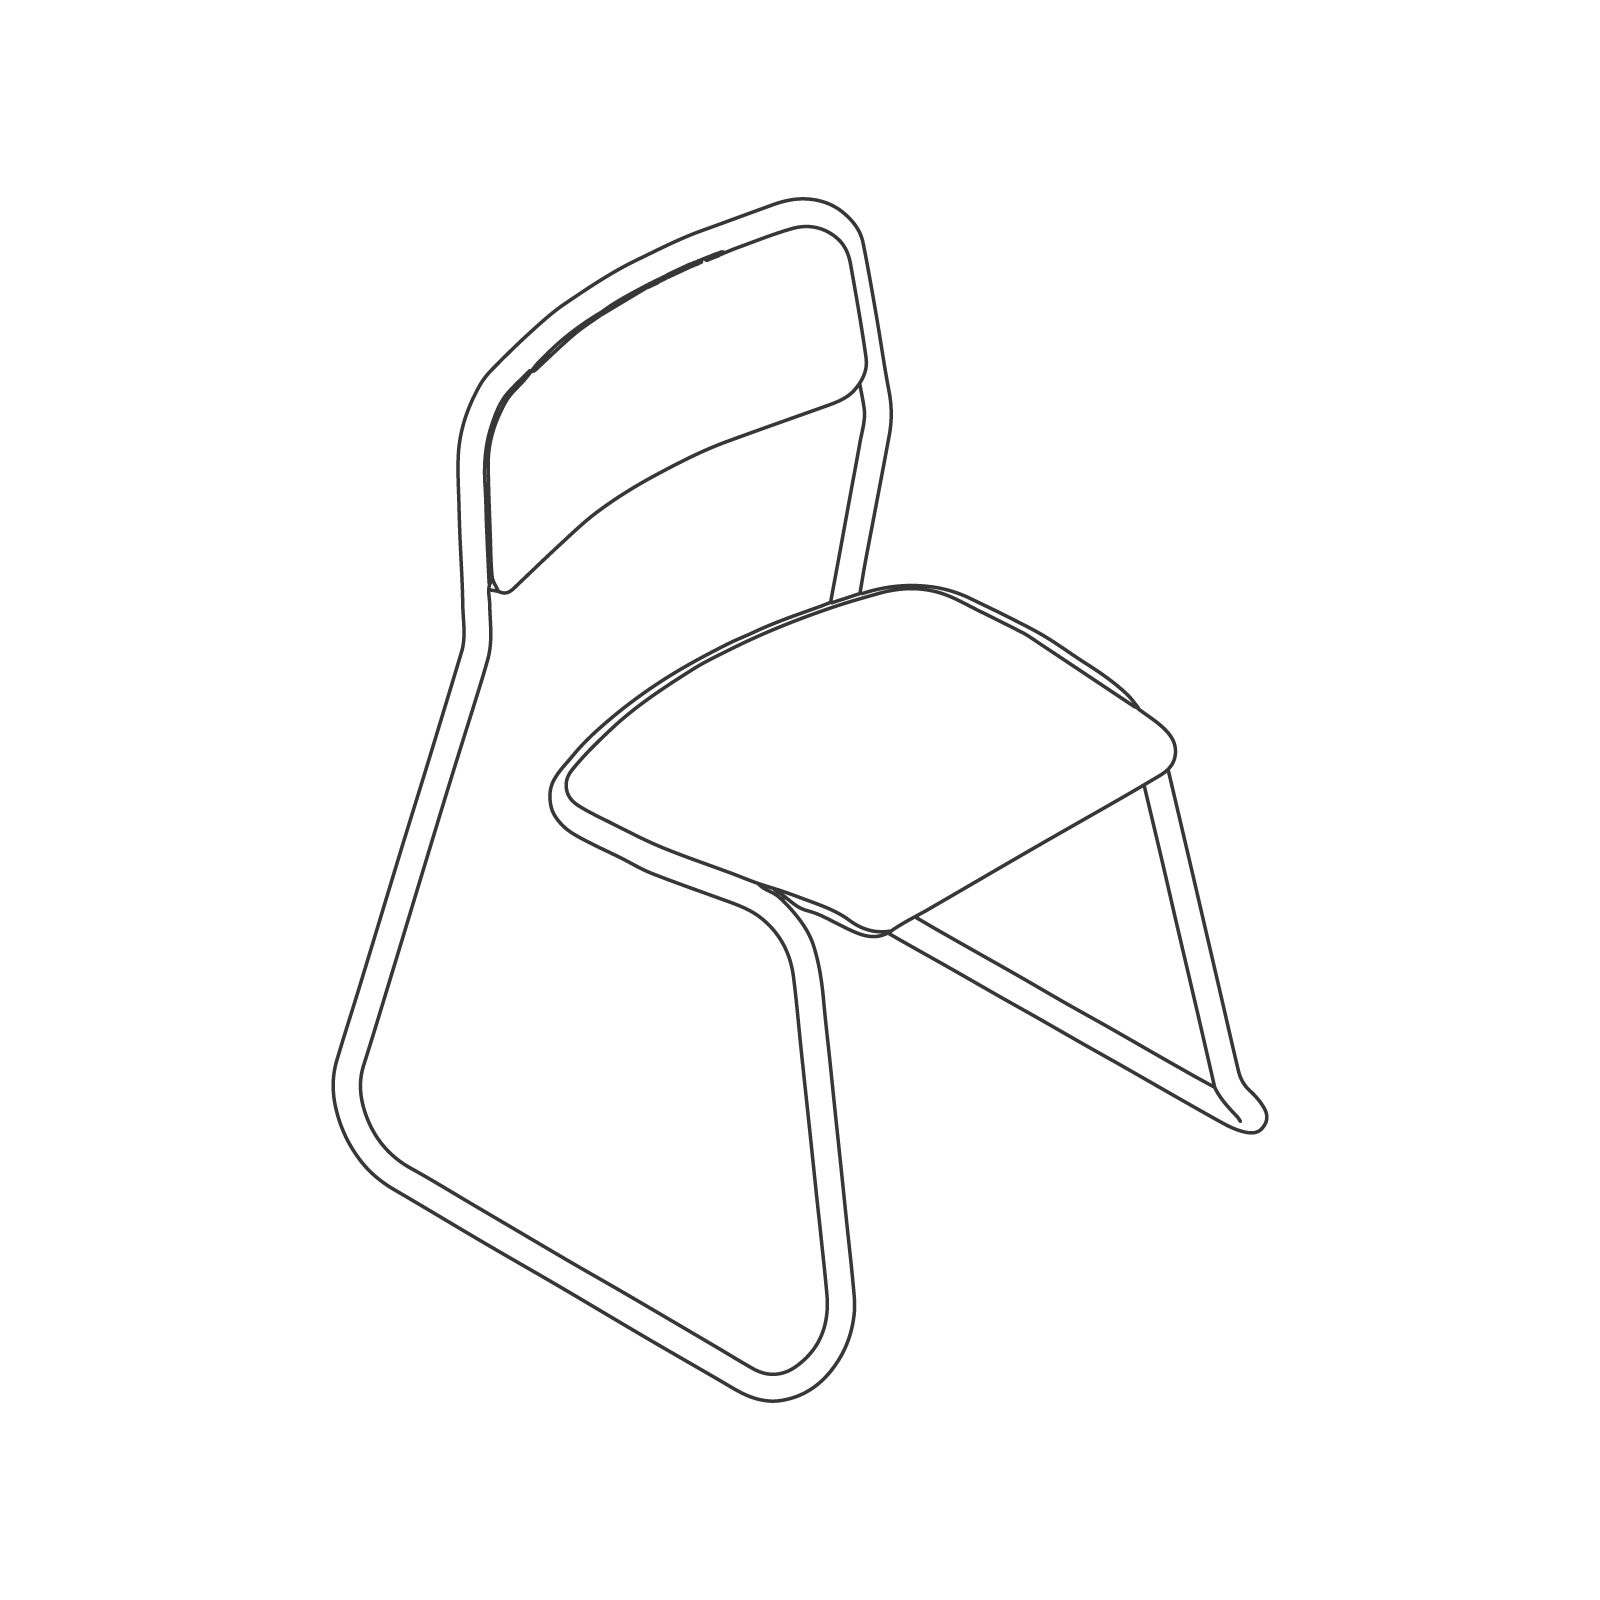 A line drawing of Bounce Chair.